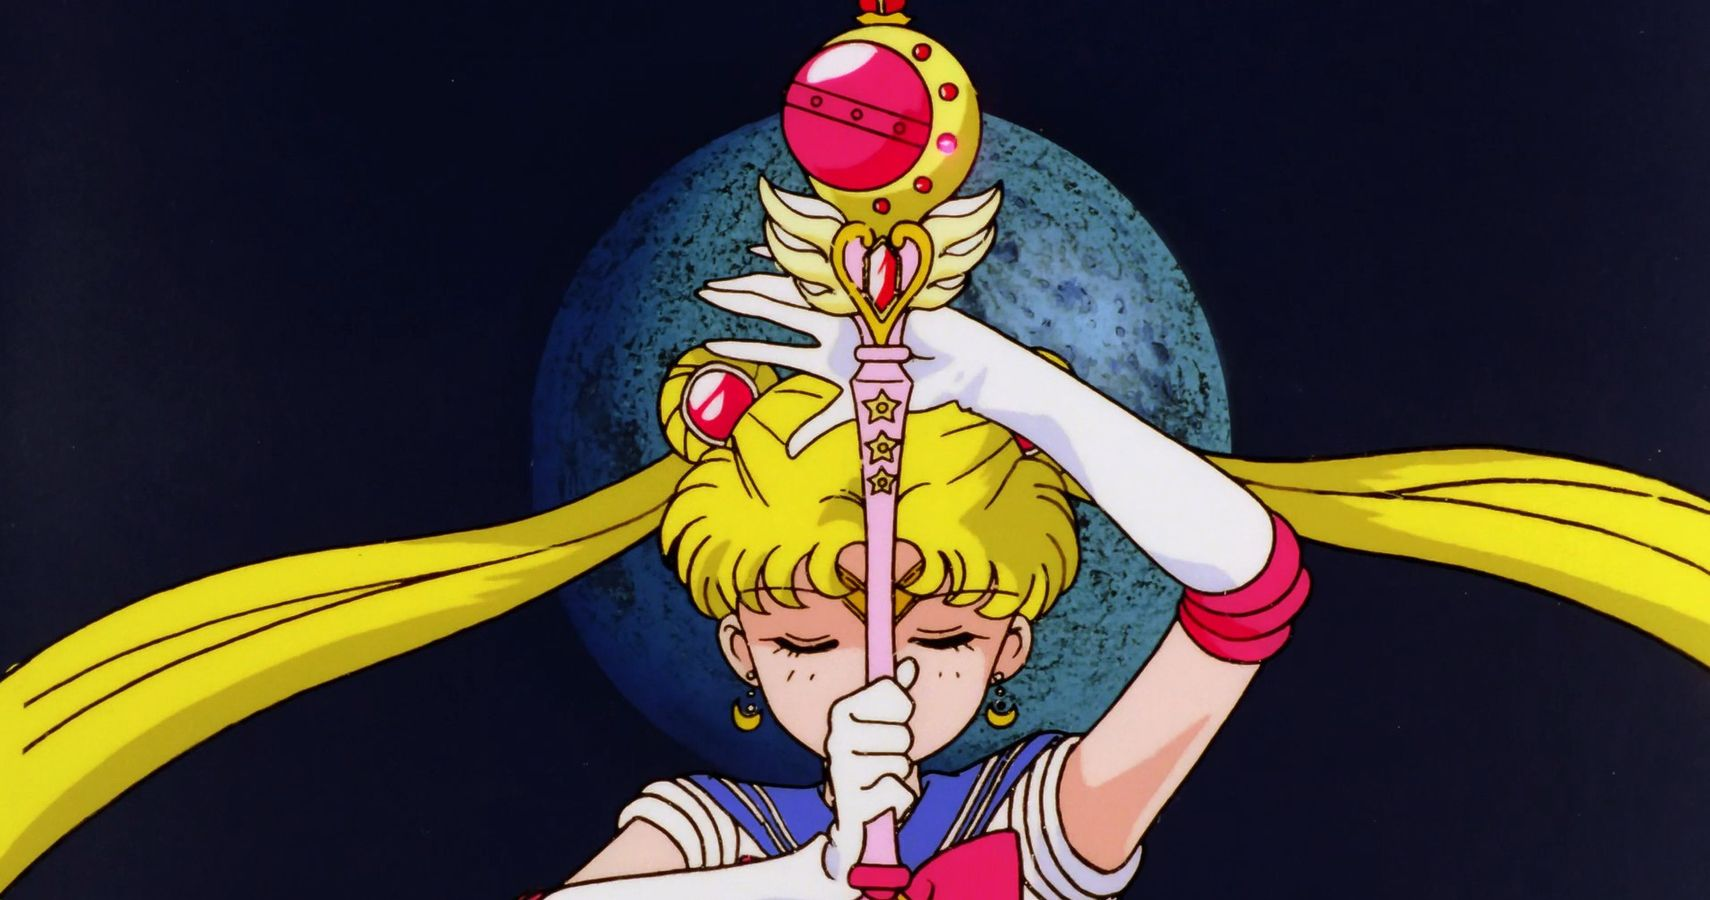 The 10 Most Vicious Sailor Moon Fights, Ranked | CBR